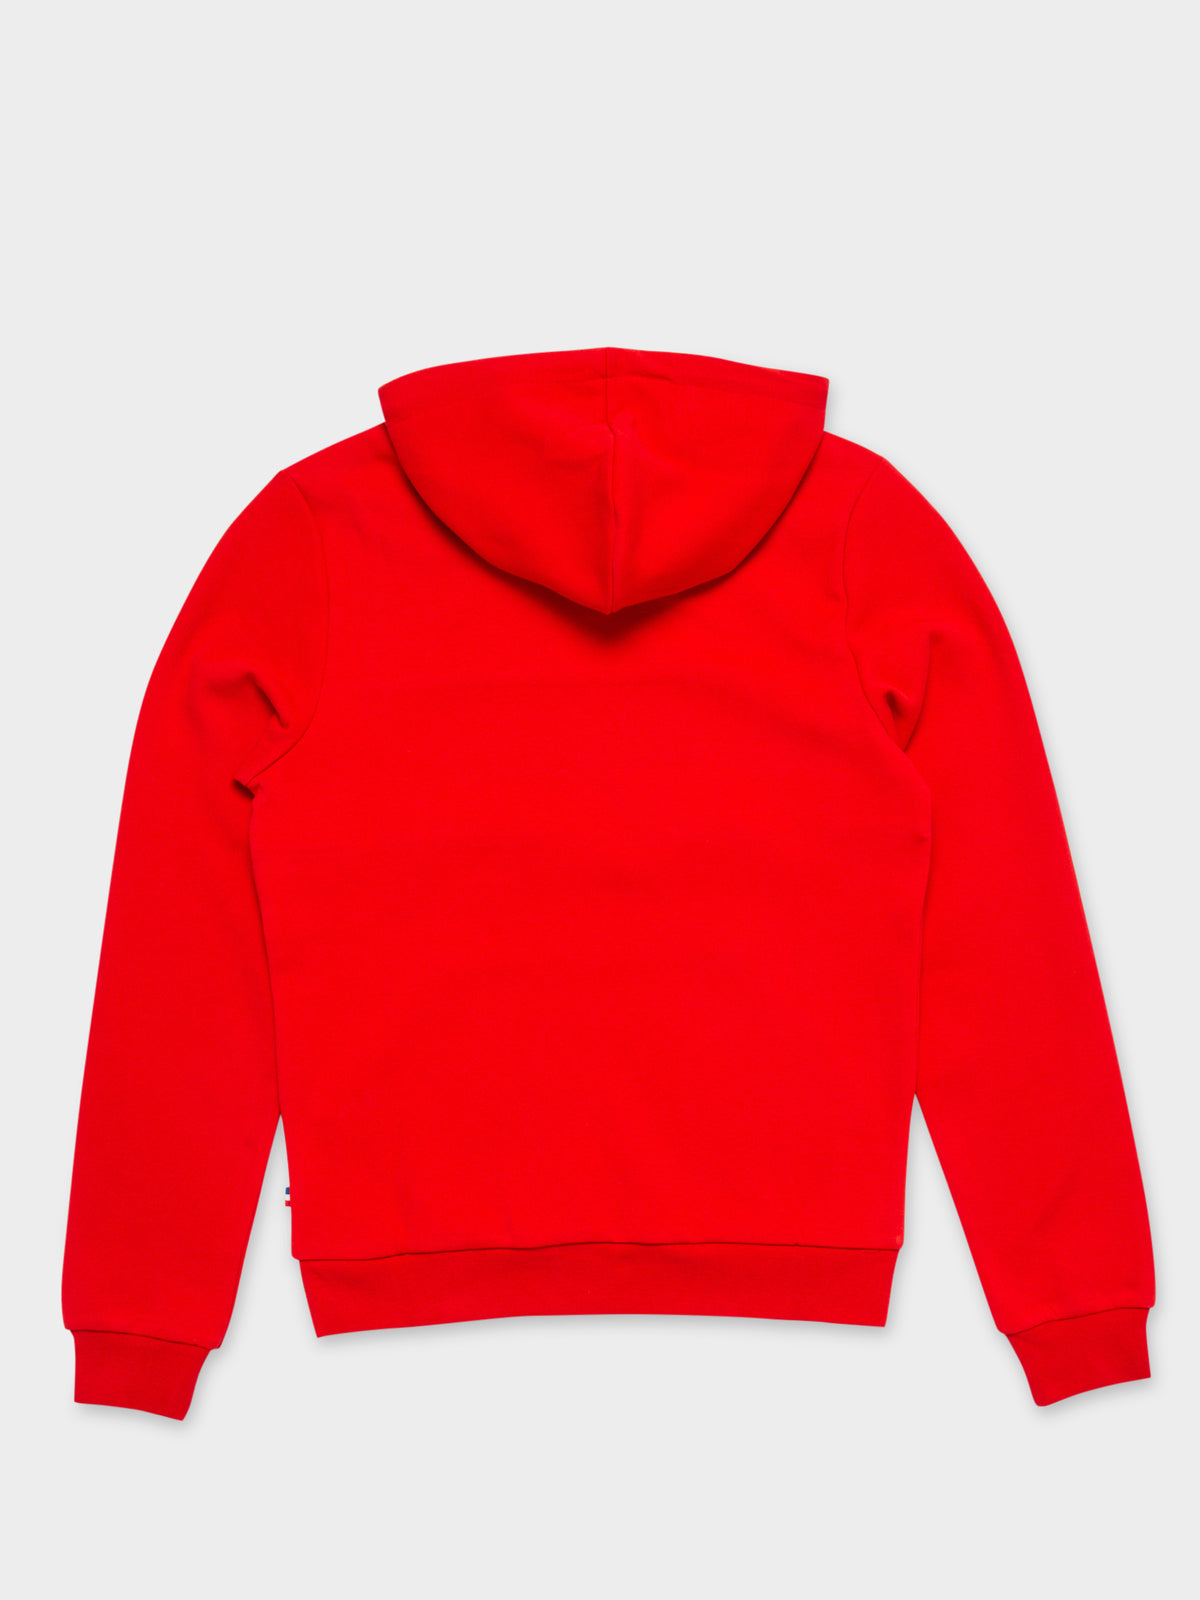 Dinan Hooded Sweater in Rouge Red